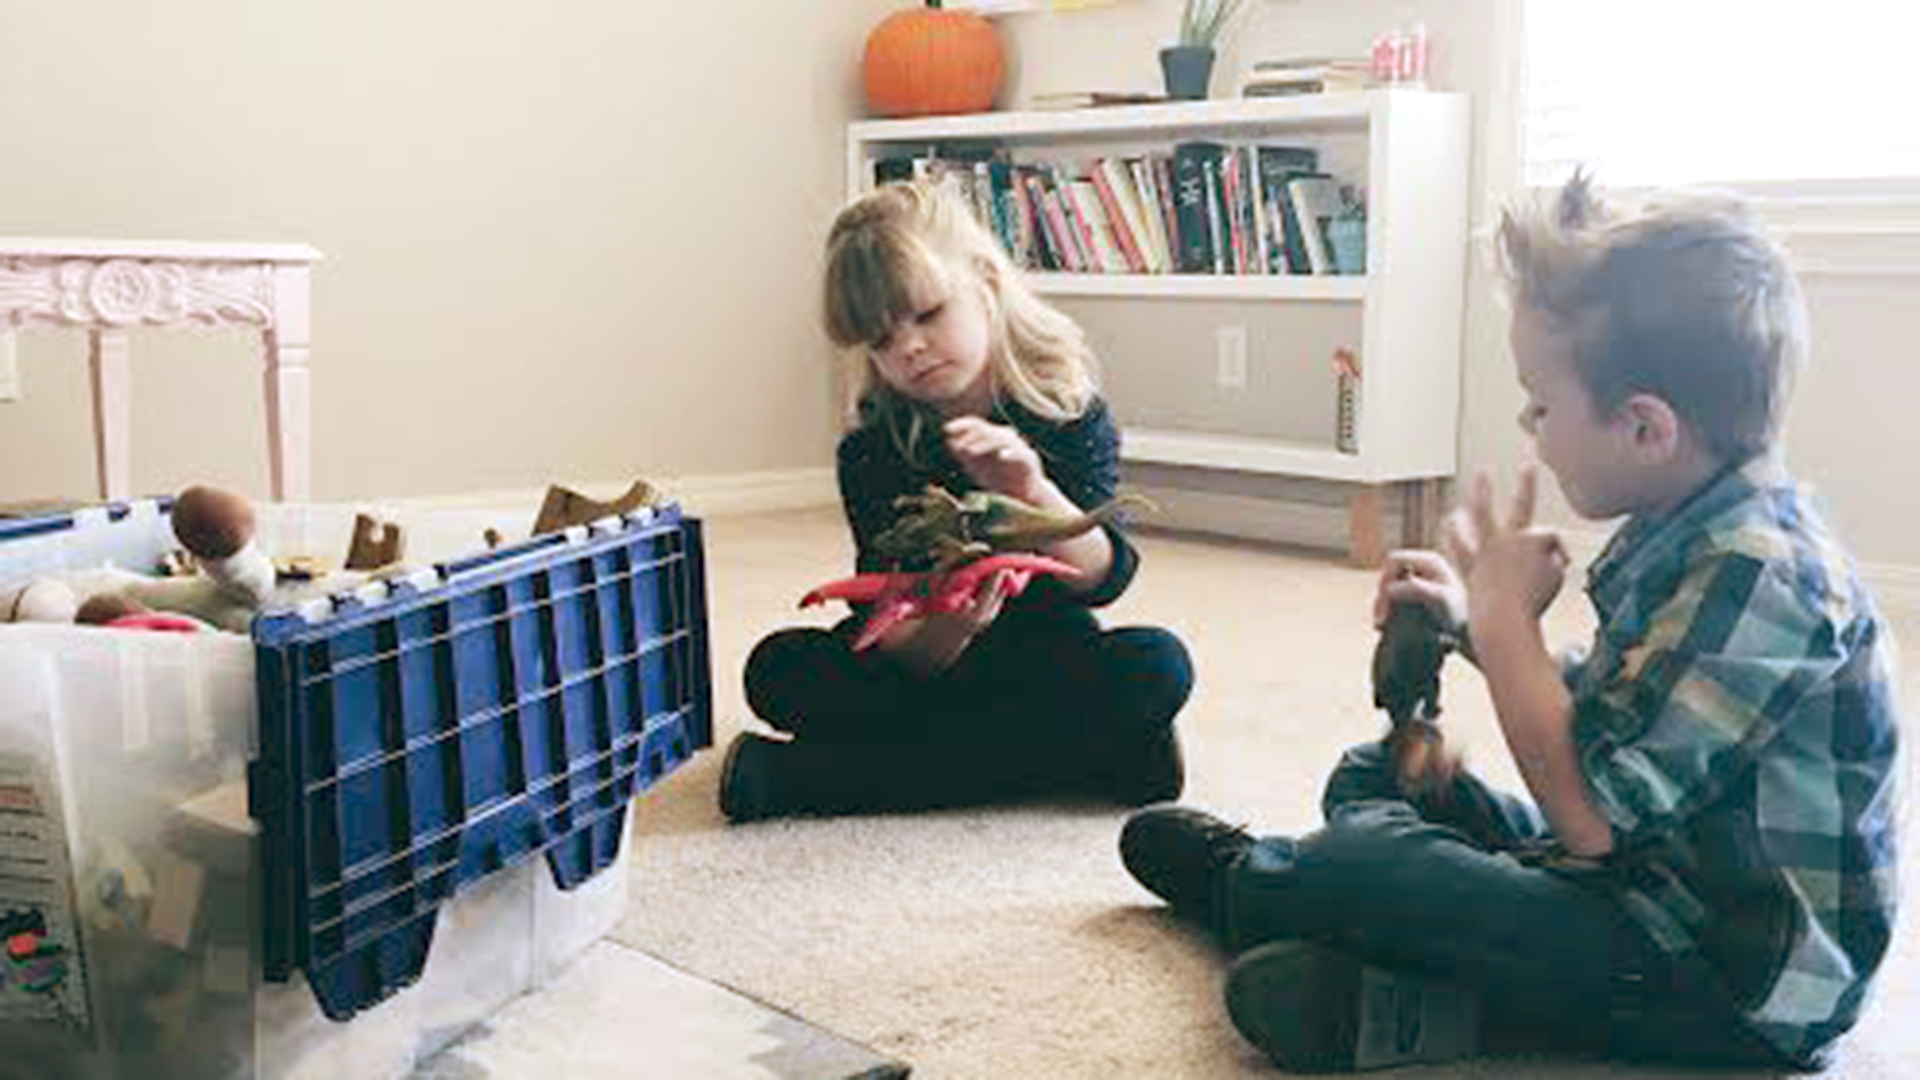 Minimalist mom gives away kids toys to declutter home TODAY